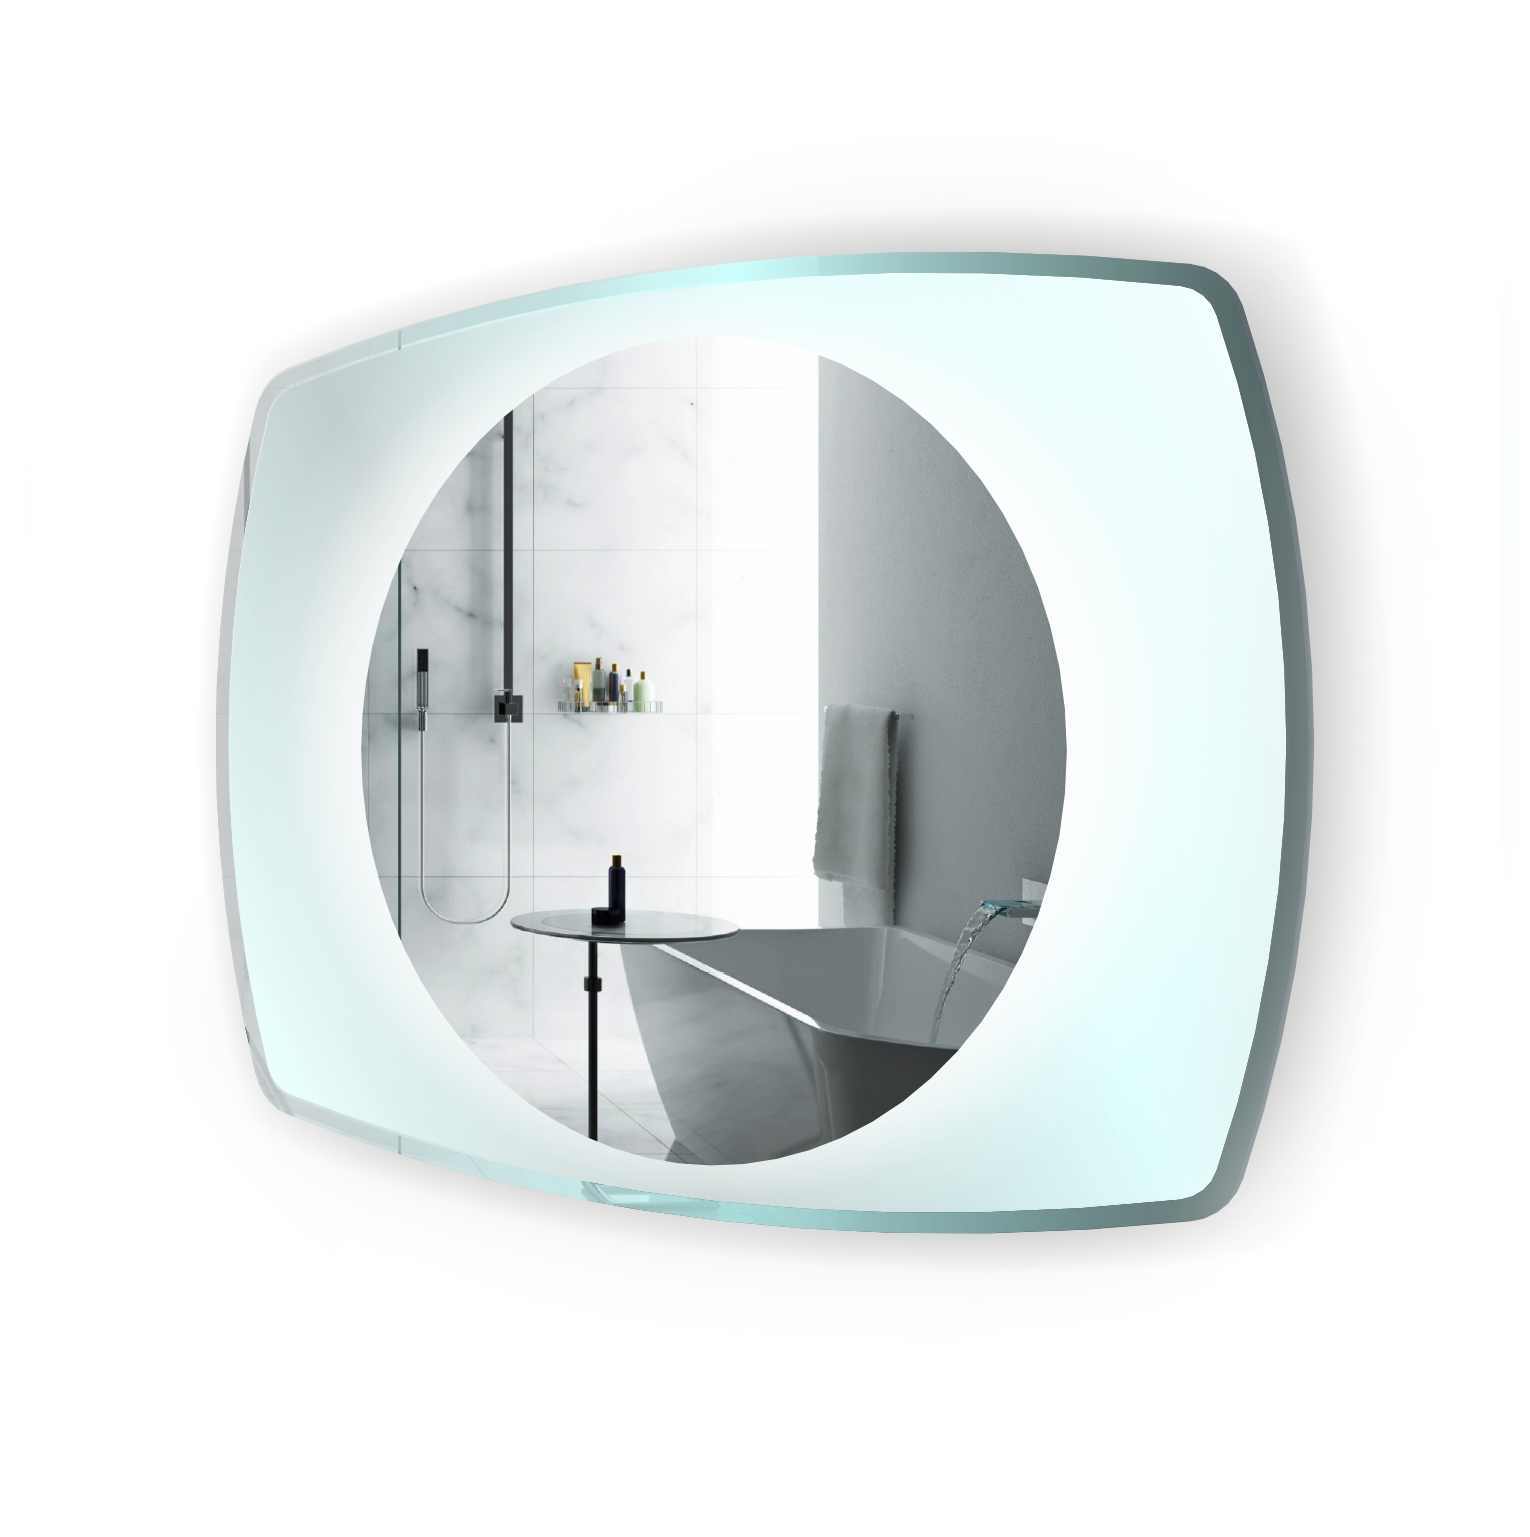 LED Lighted 32 Inch x 24 Inch Bathroom Mirror With Glass Frame